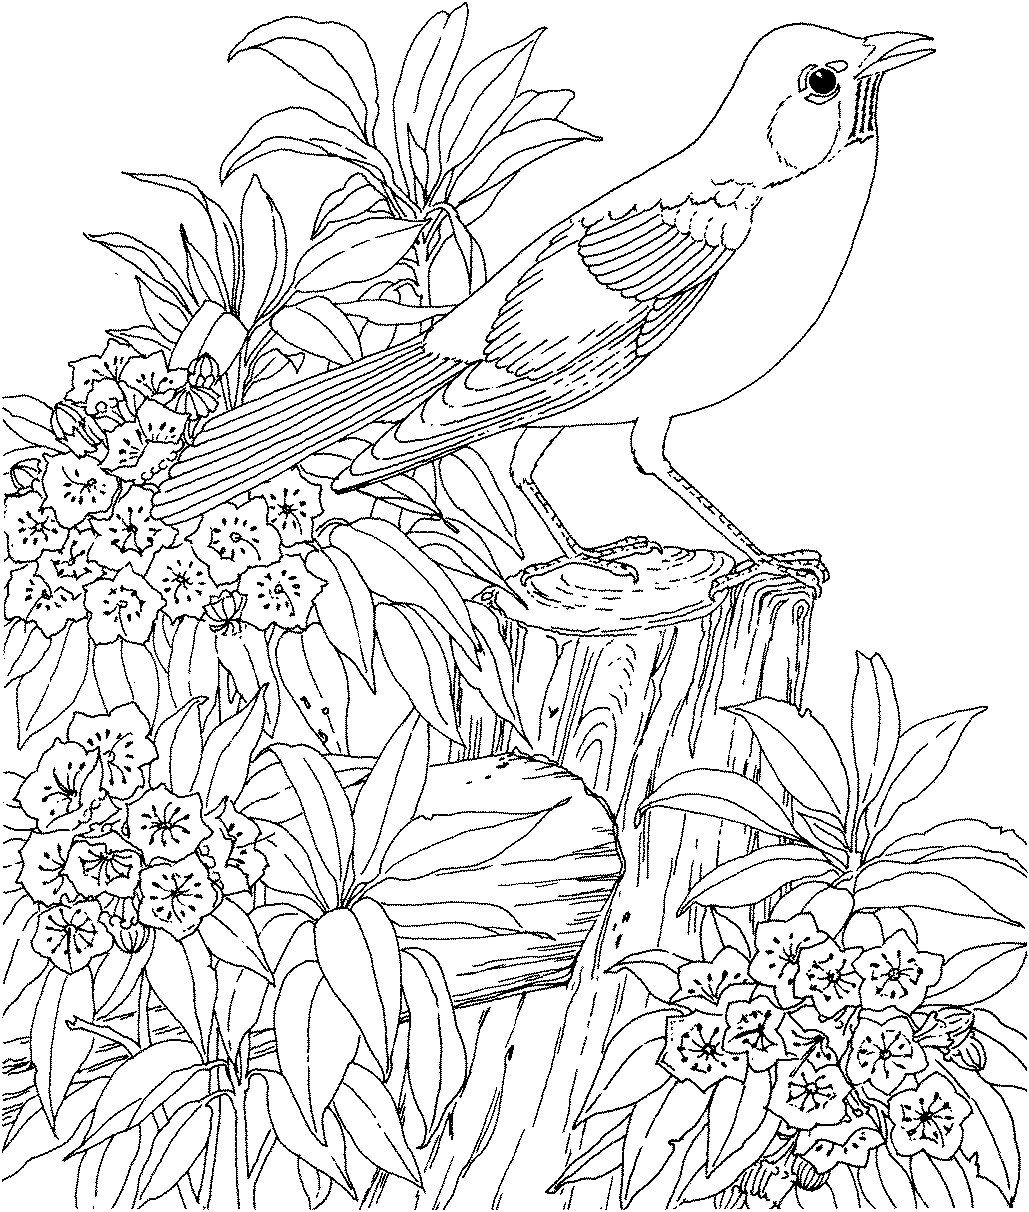 Colouring Page Birds Detailed Coloring Pages Animal Coloring Pages Flower Coloring Pages